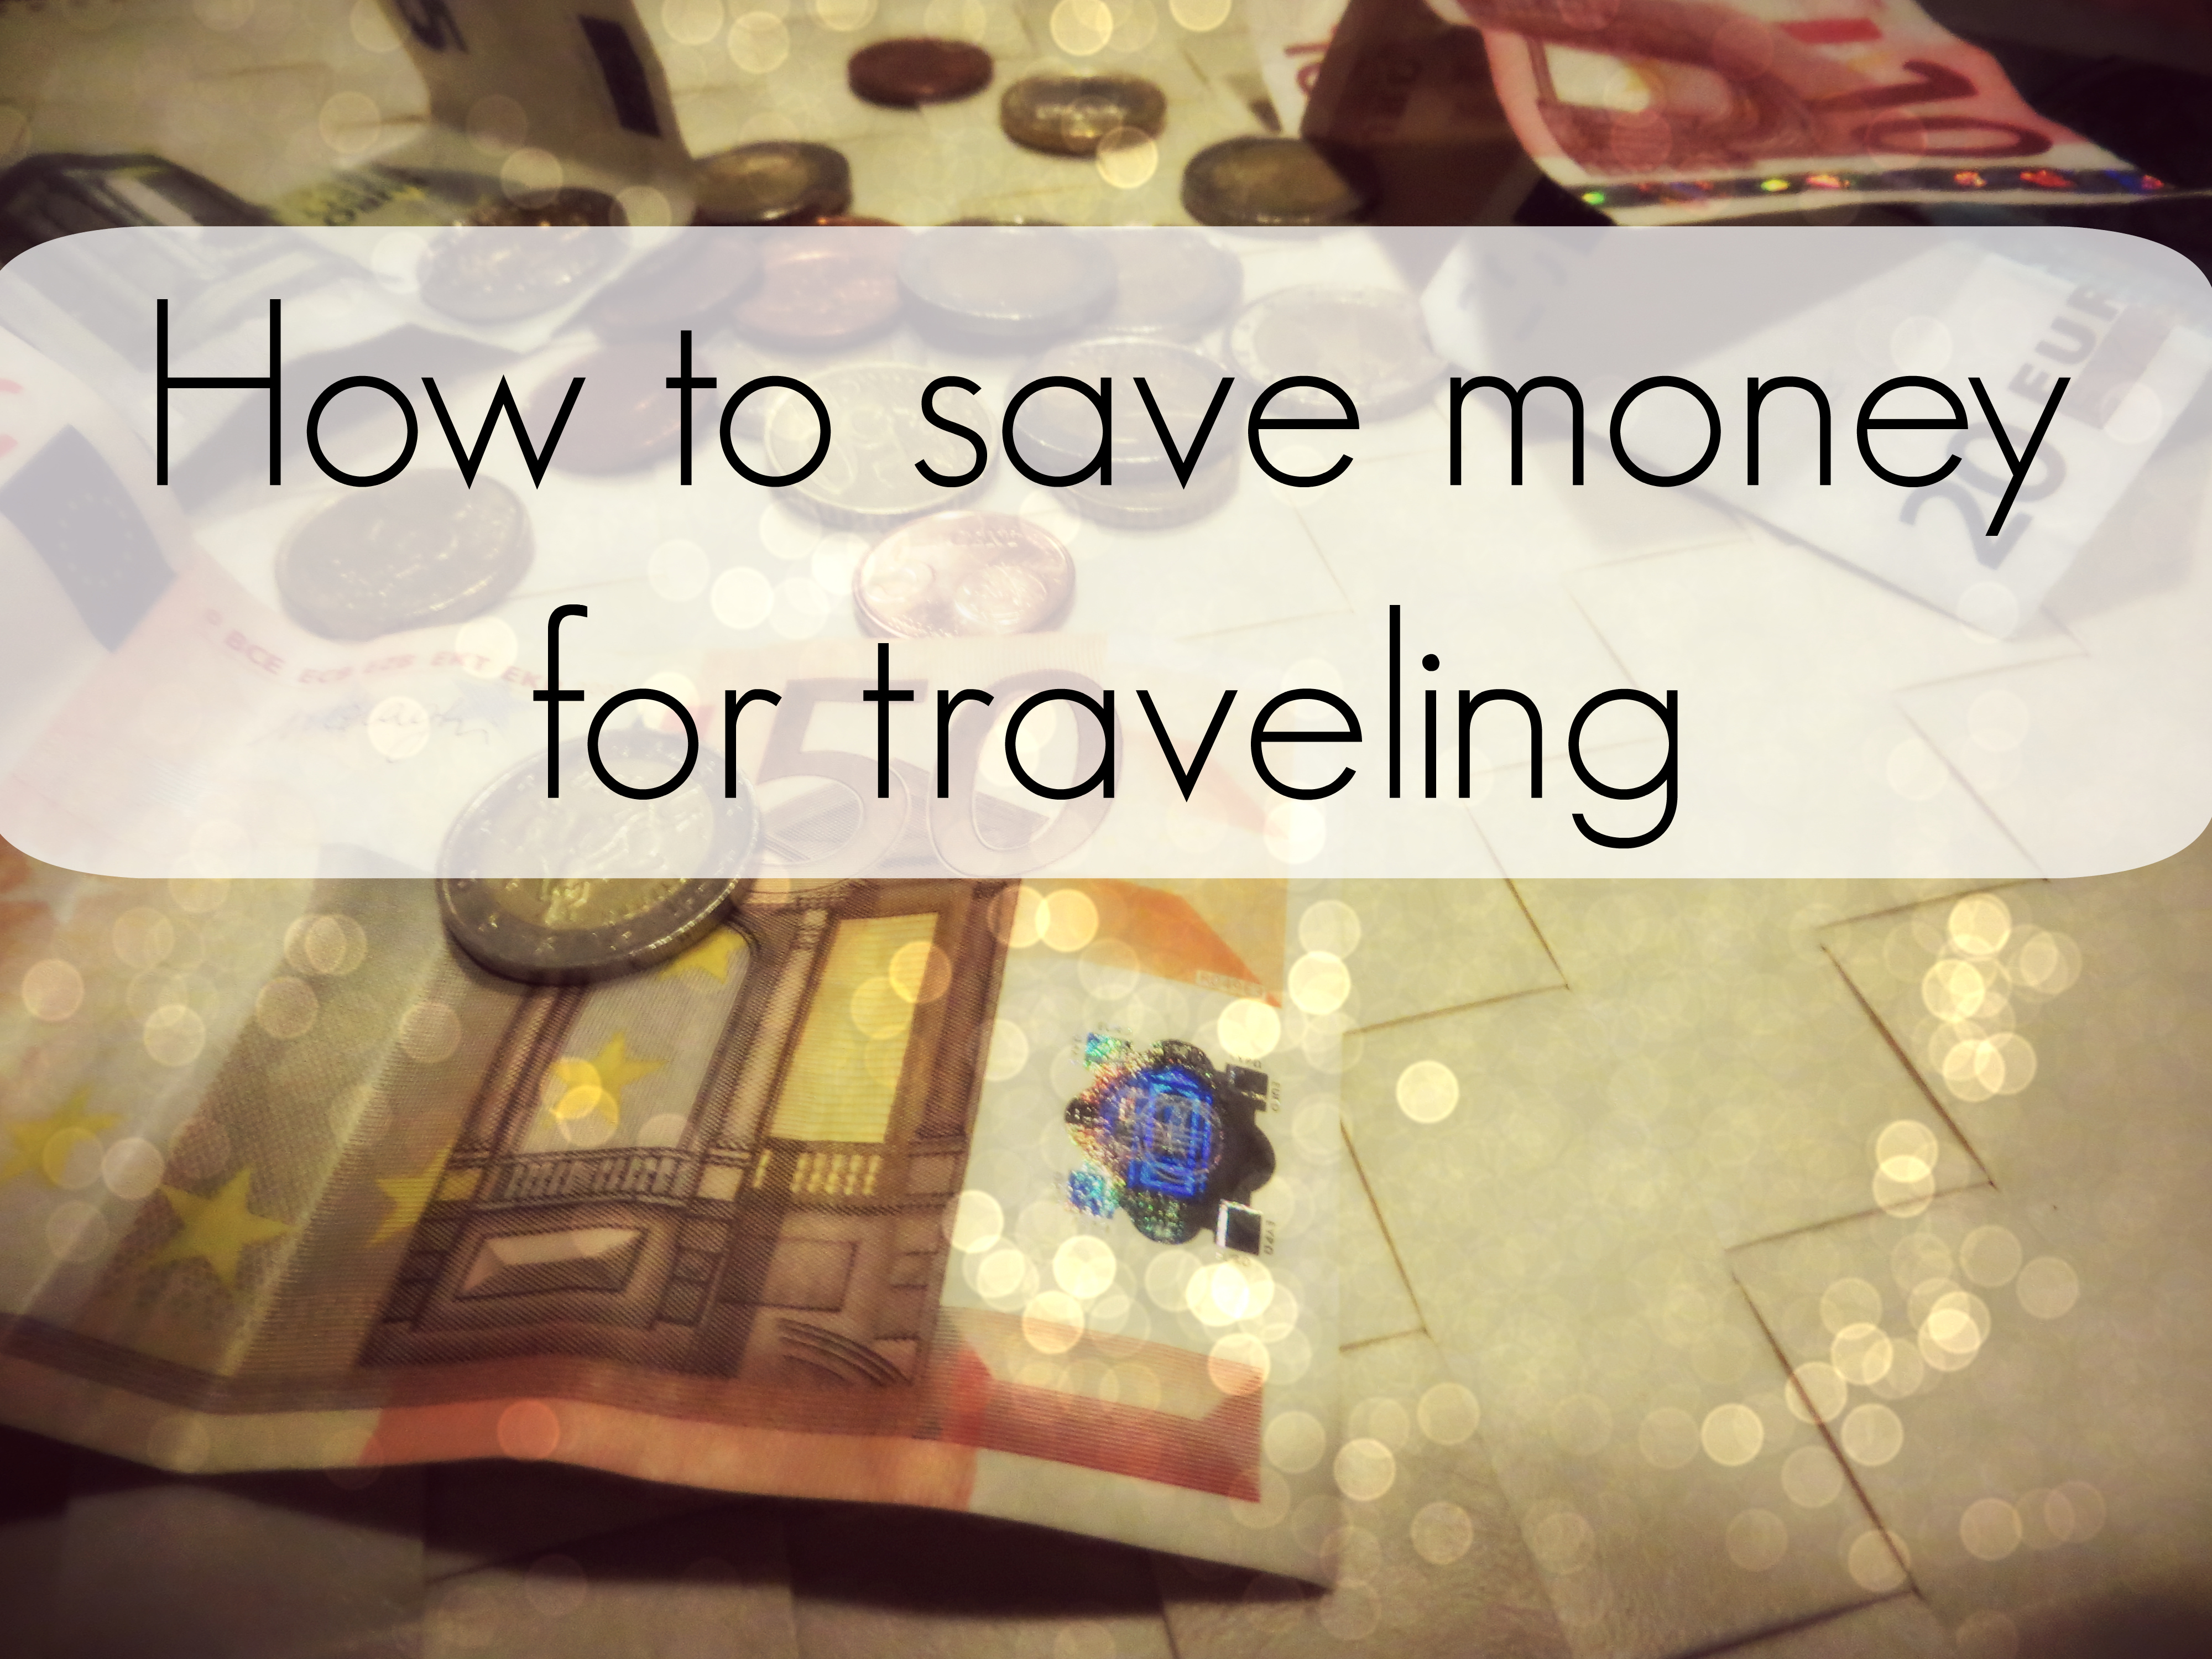 9 Tried and True Ways to Save Money for Traveling